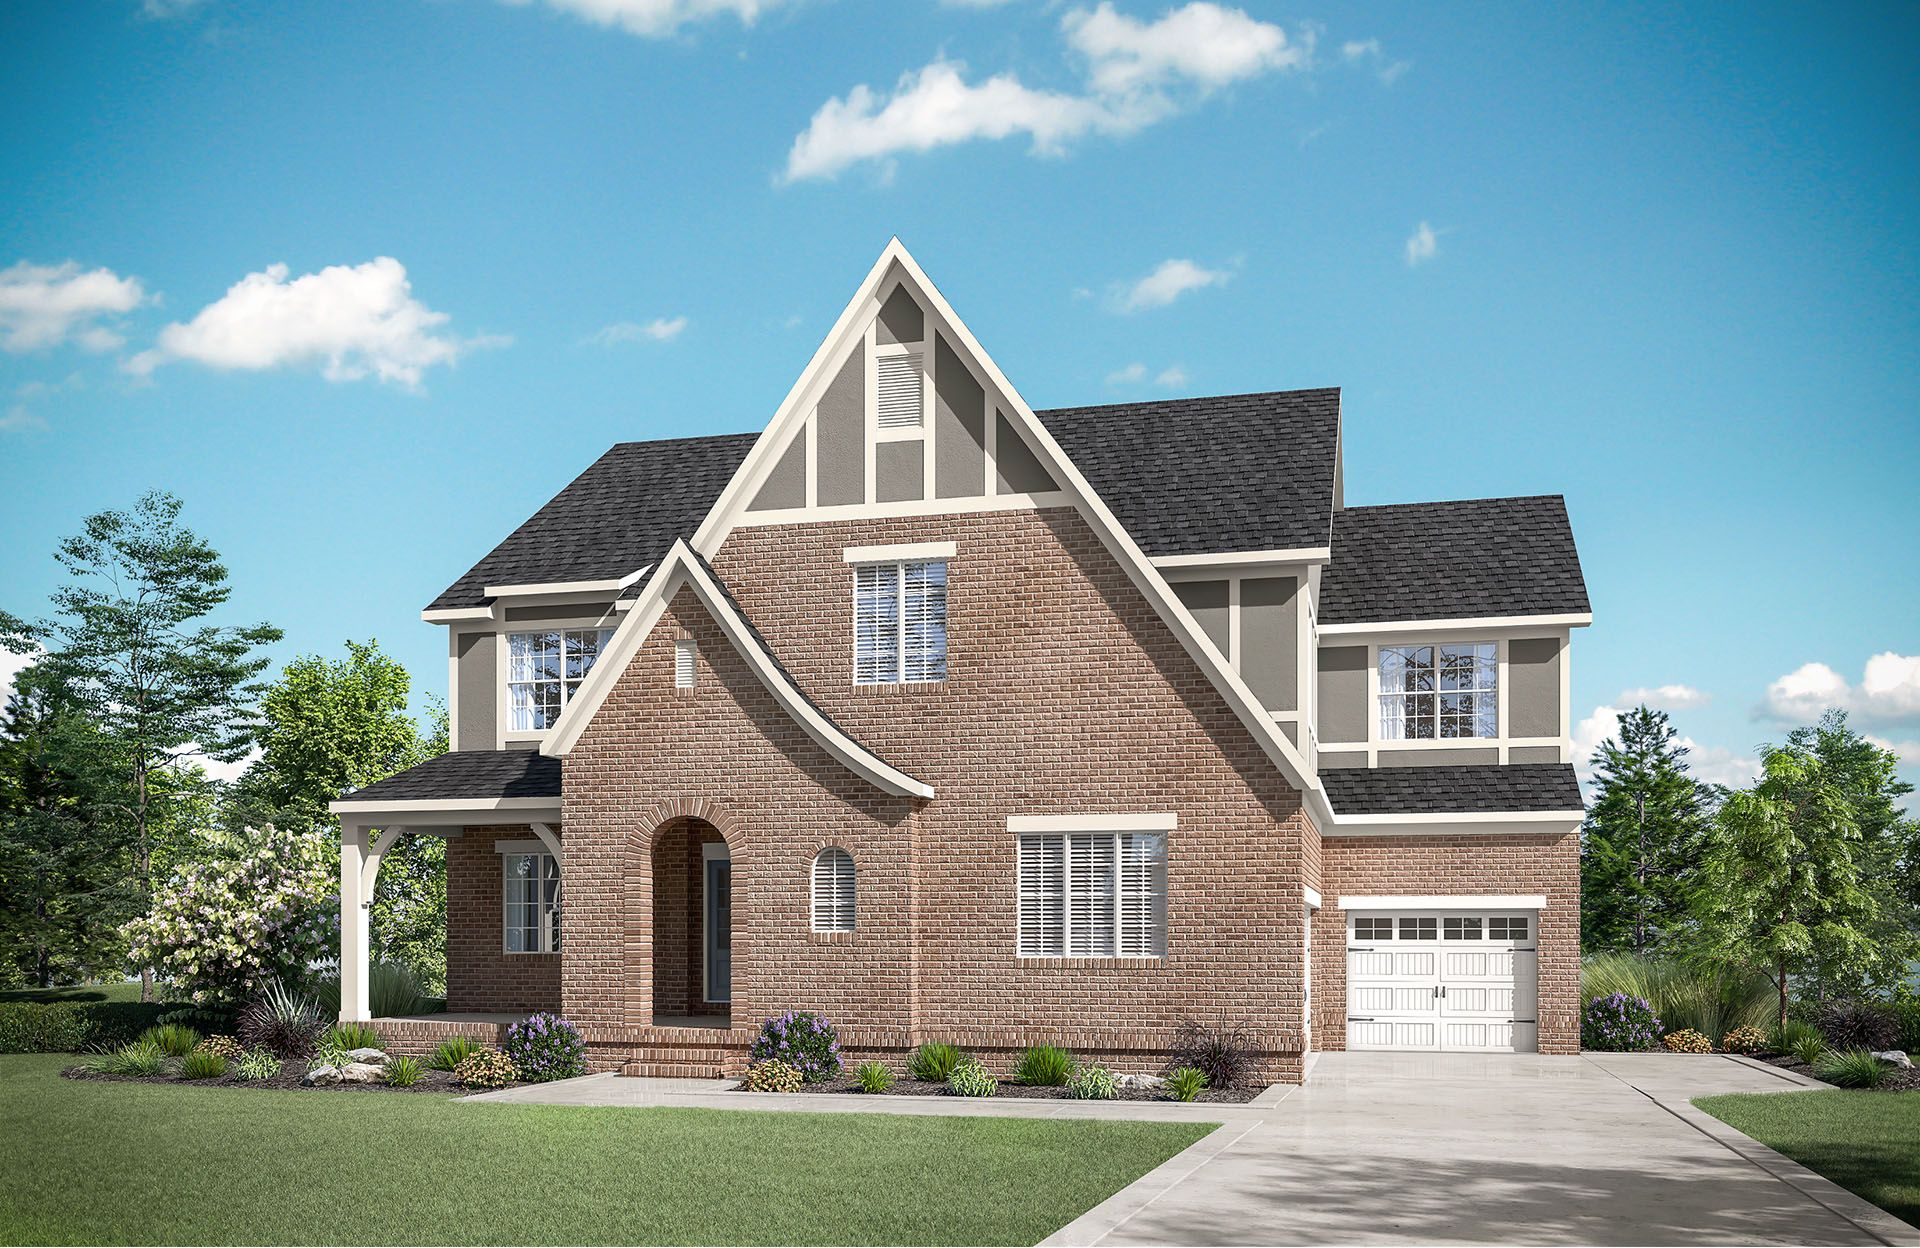 Single Family for Active at Willoughby - Theodore 496 Adkins Ridge Road Rolesville, North Carolina 27571 United States